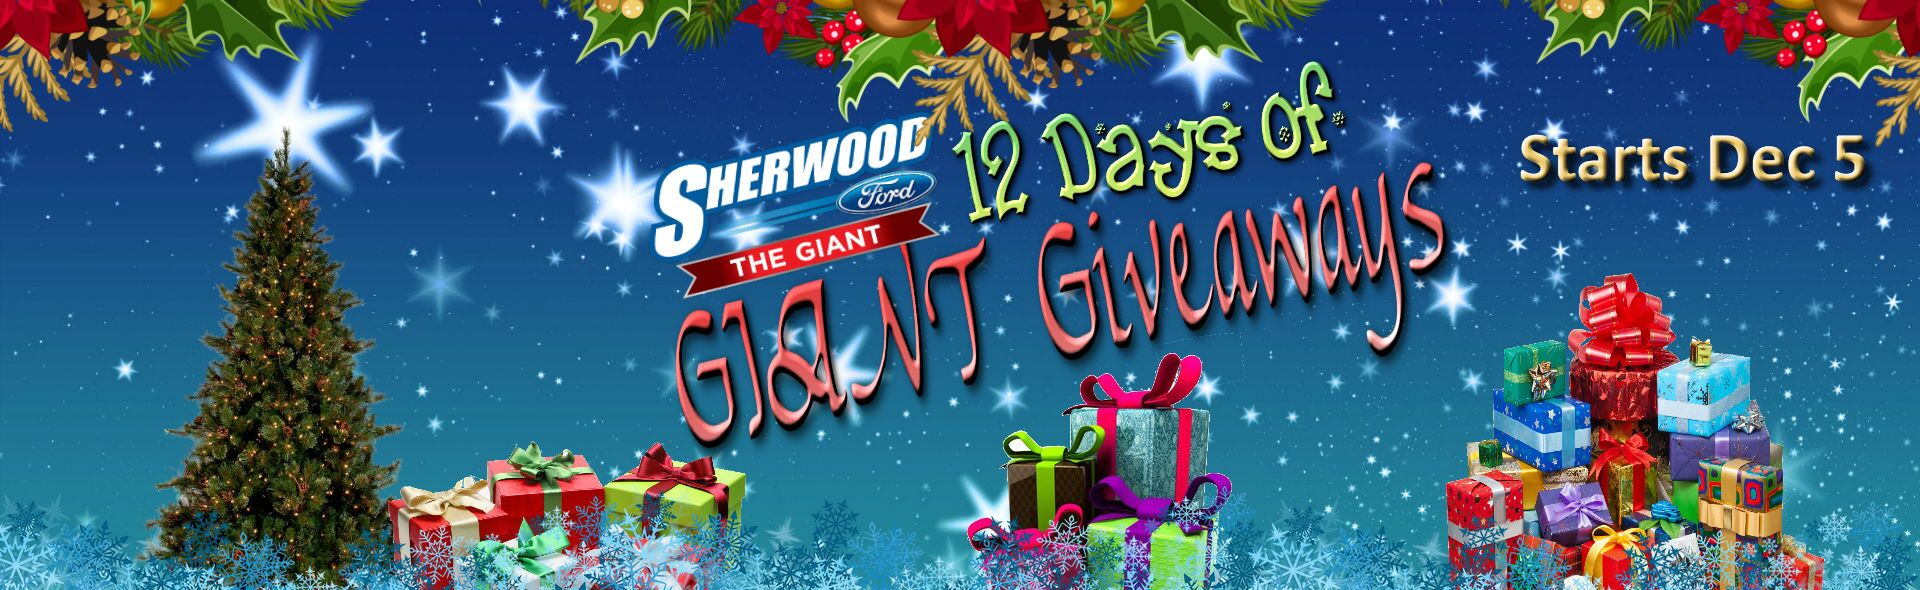 Sherwood Ford 12 Days of Giveaways